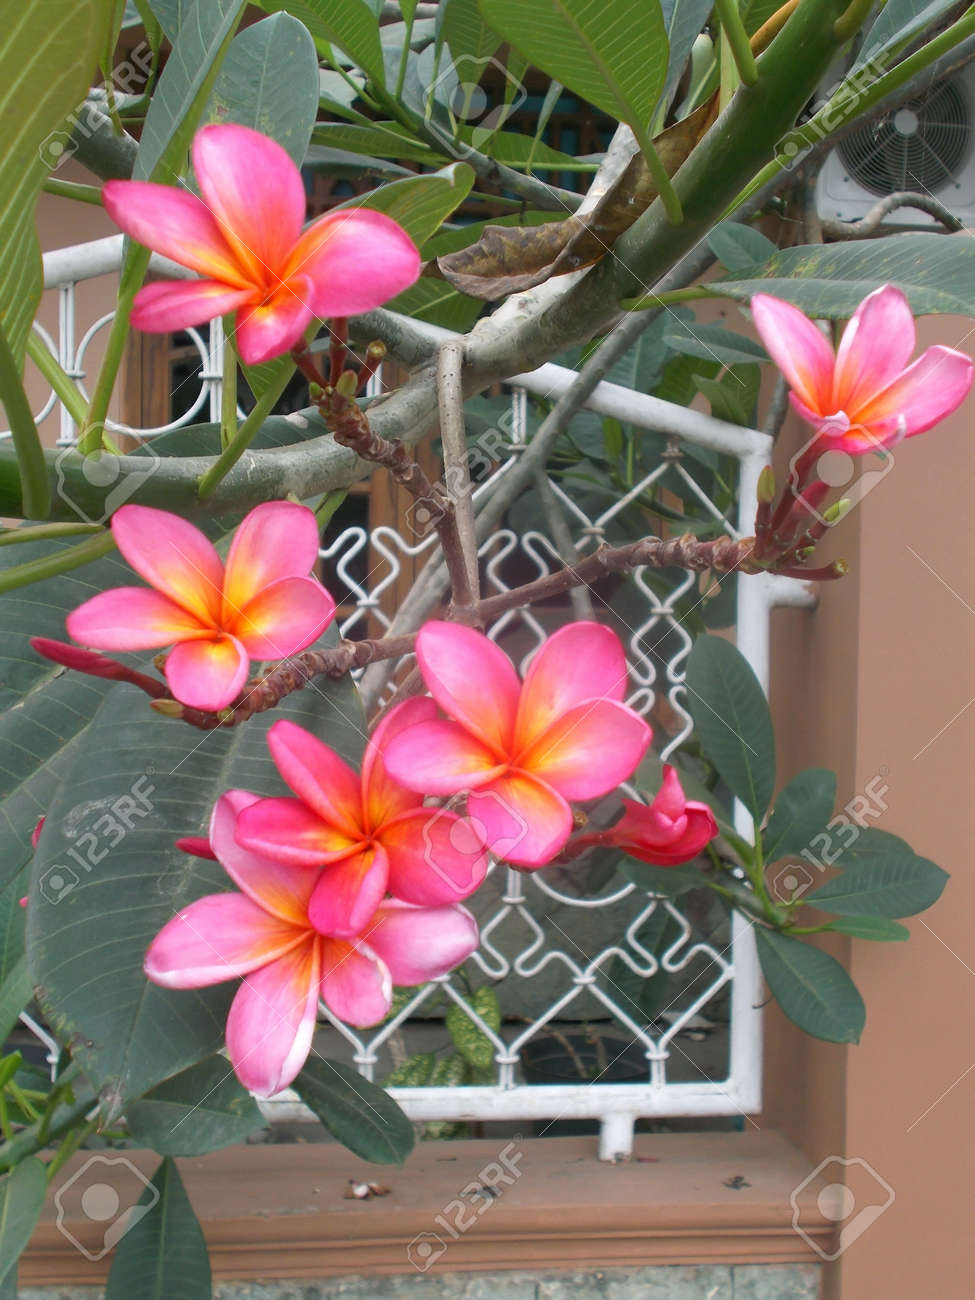 Red yellow pink plumeria flower on the tree stock photo picture and red yellow pink plumeria flower on the tree stock photo 60722349 mightylinksfo